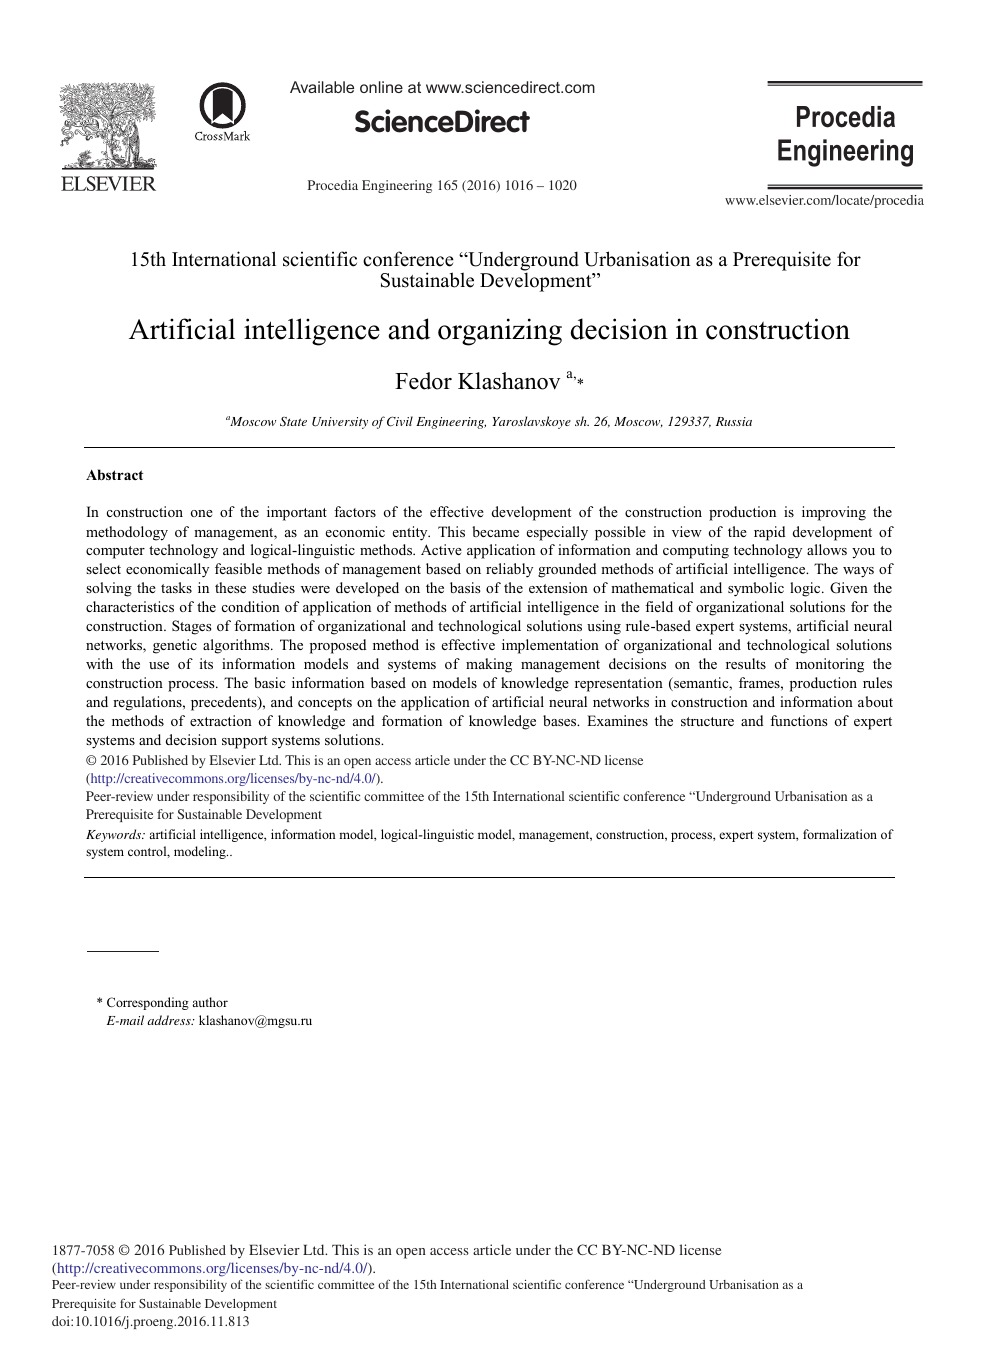 004 Artificial Intelligence Researchs Singular Research Papers 2016 Full